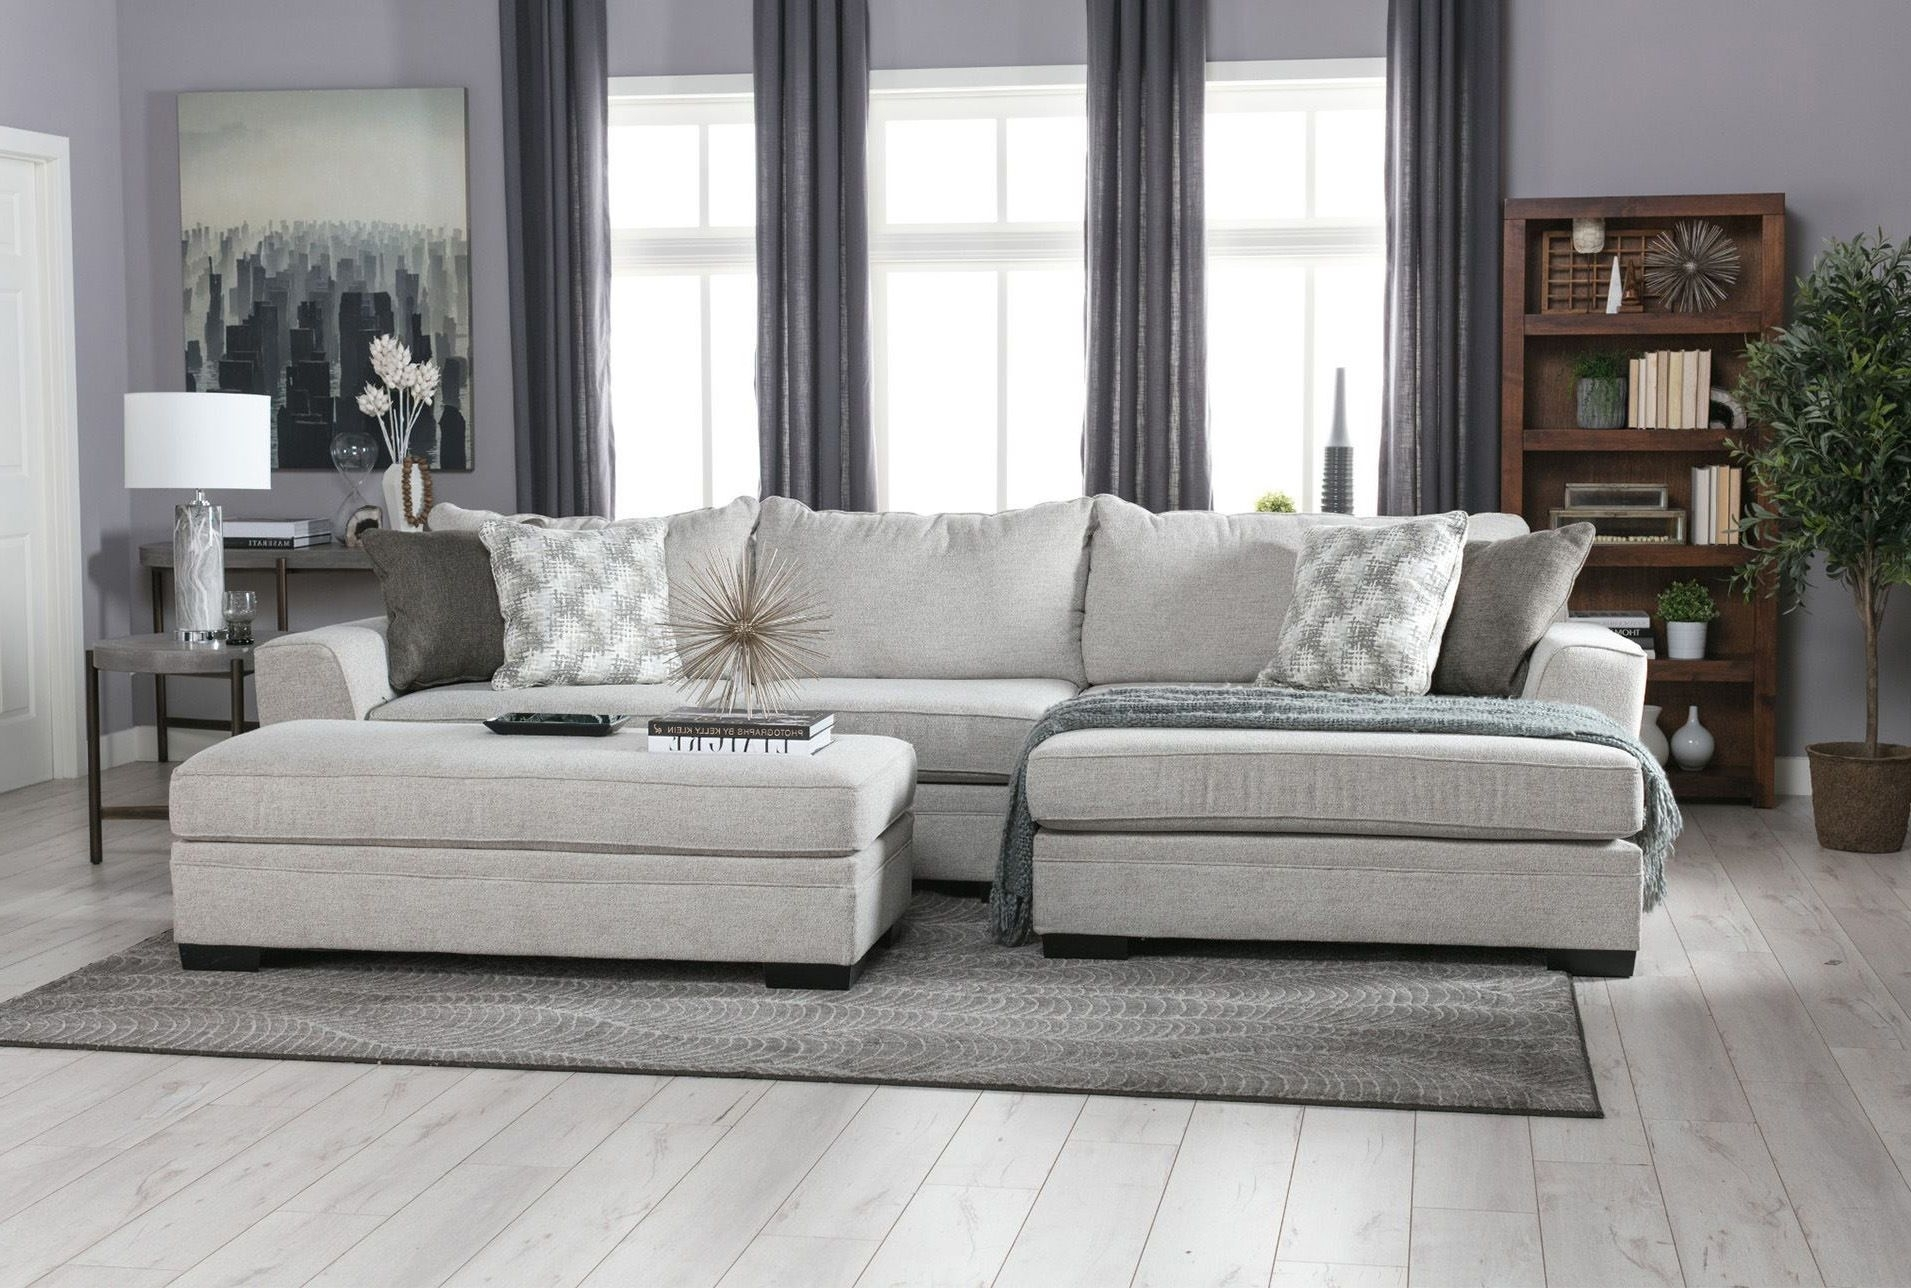 Aquarius Light Grey 2 Piece Sectional Wlaf Chaise Minimalist With Avery 2 Piece Sectionals With Raf Armless Chaise (Image 3 of 25)